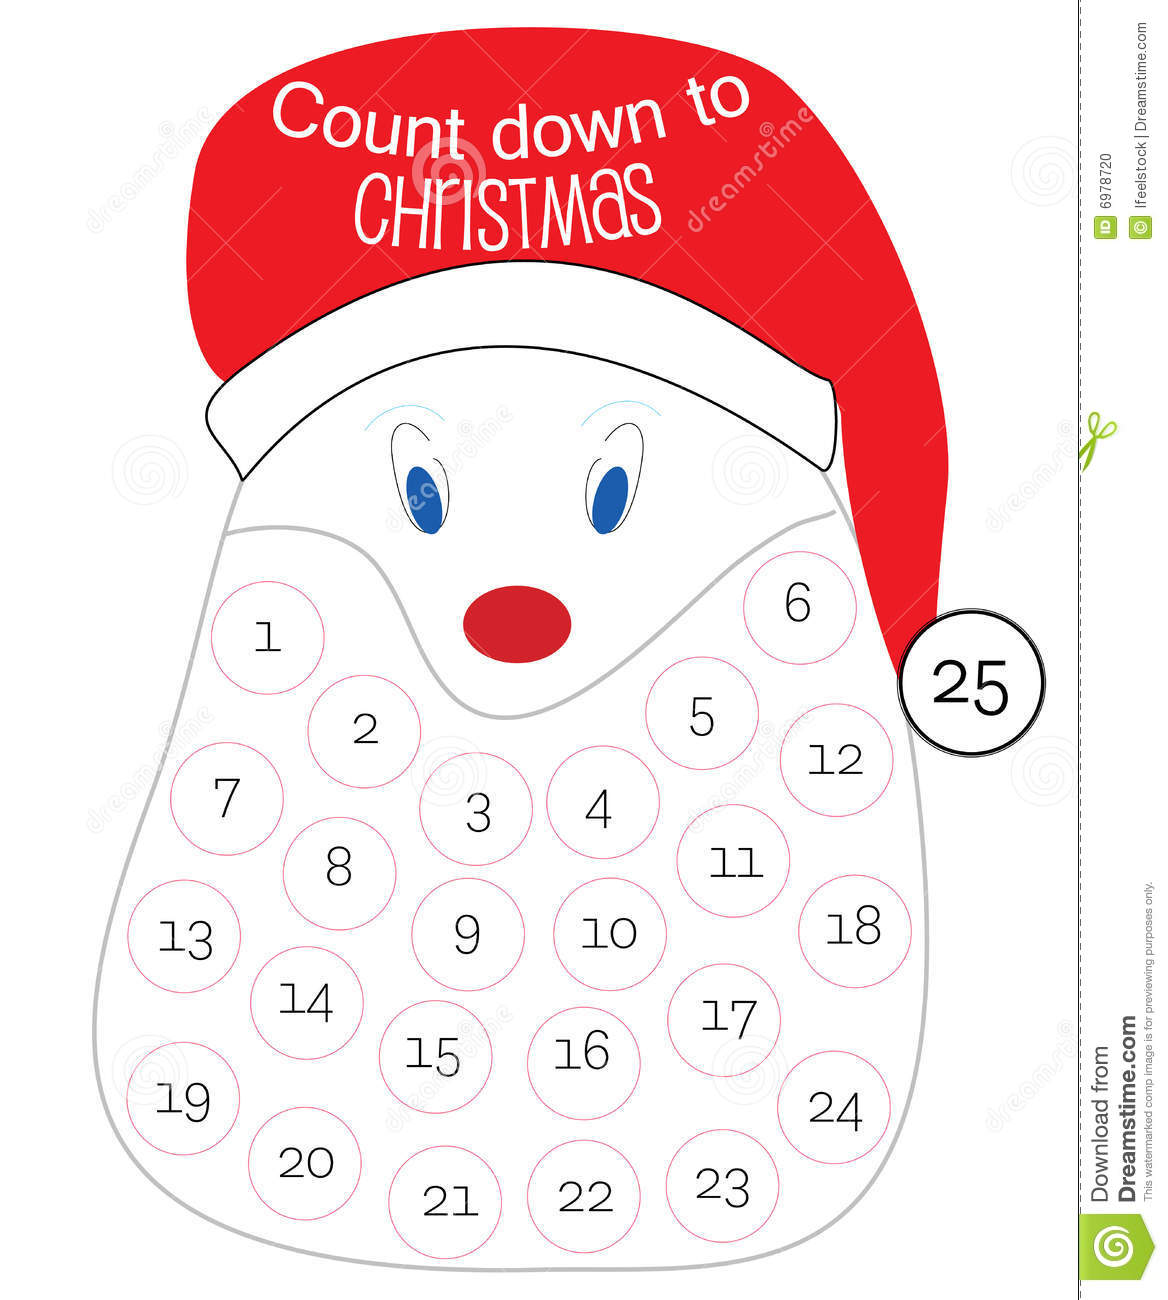 Countdown Till Christmas Stock Photo   Image  6978720 LTxM0NDi